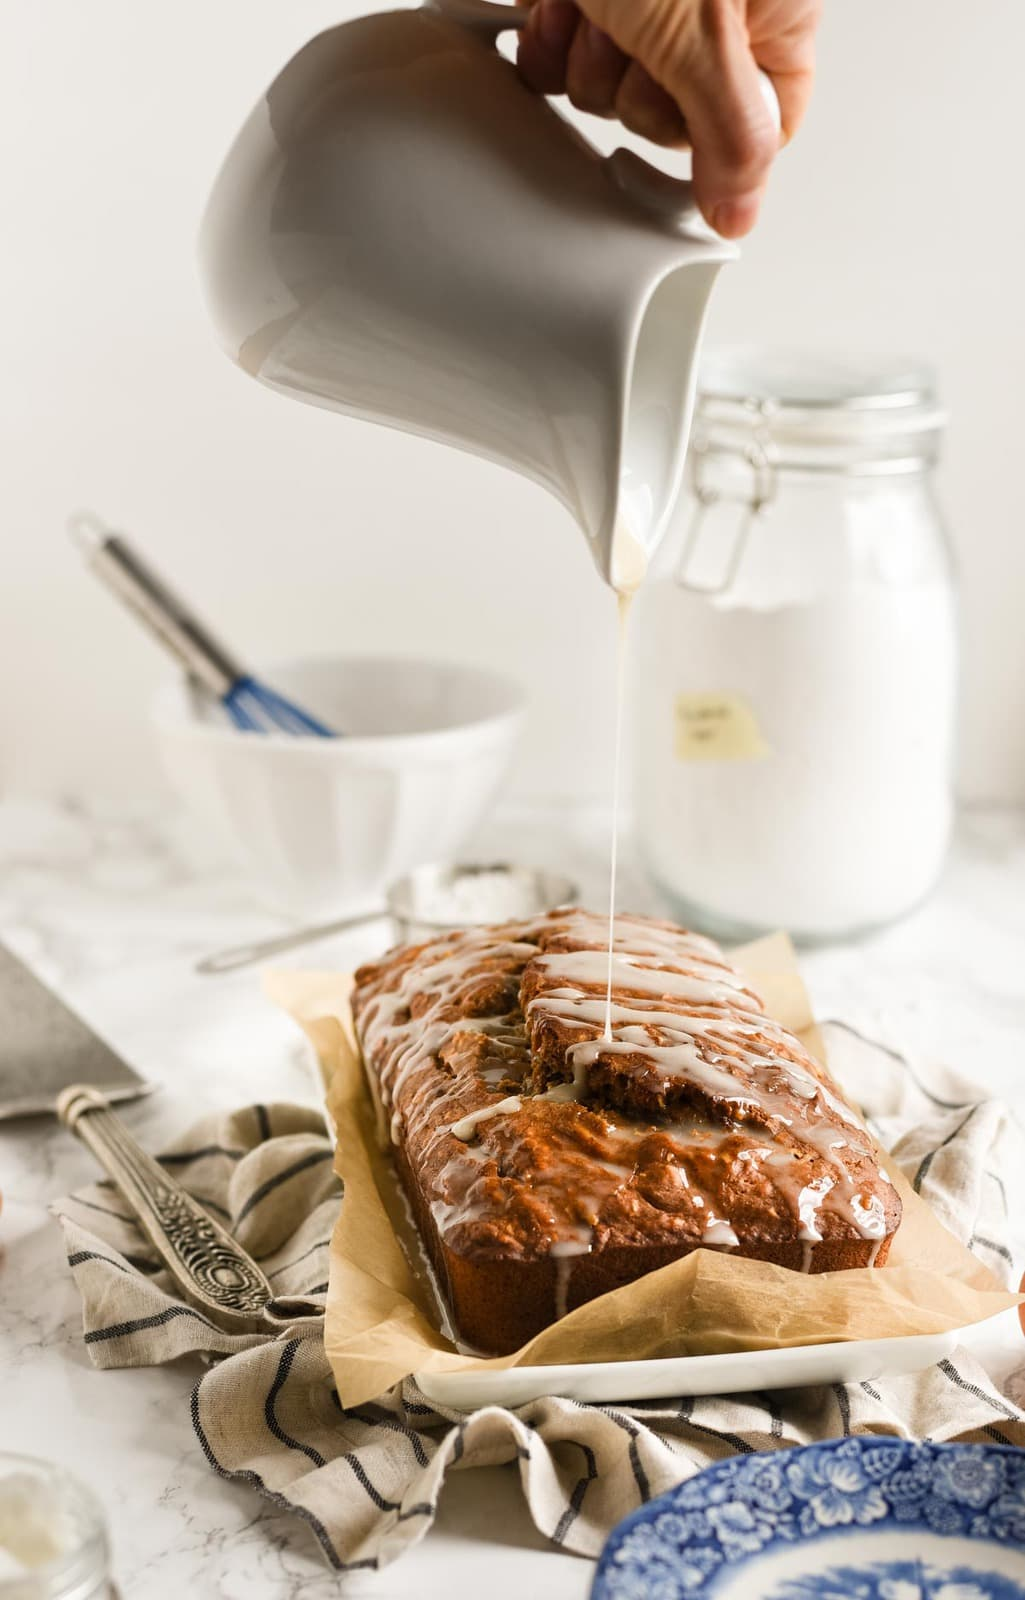 banana bread with glaze being drizzled on top